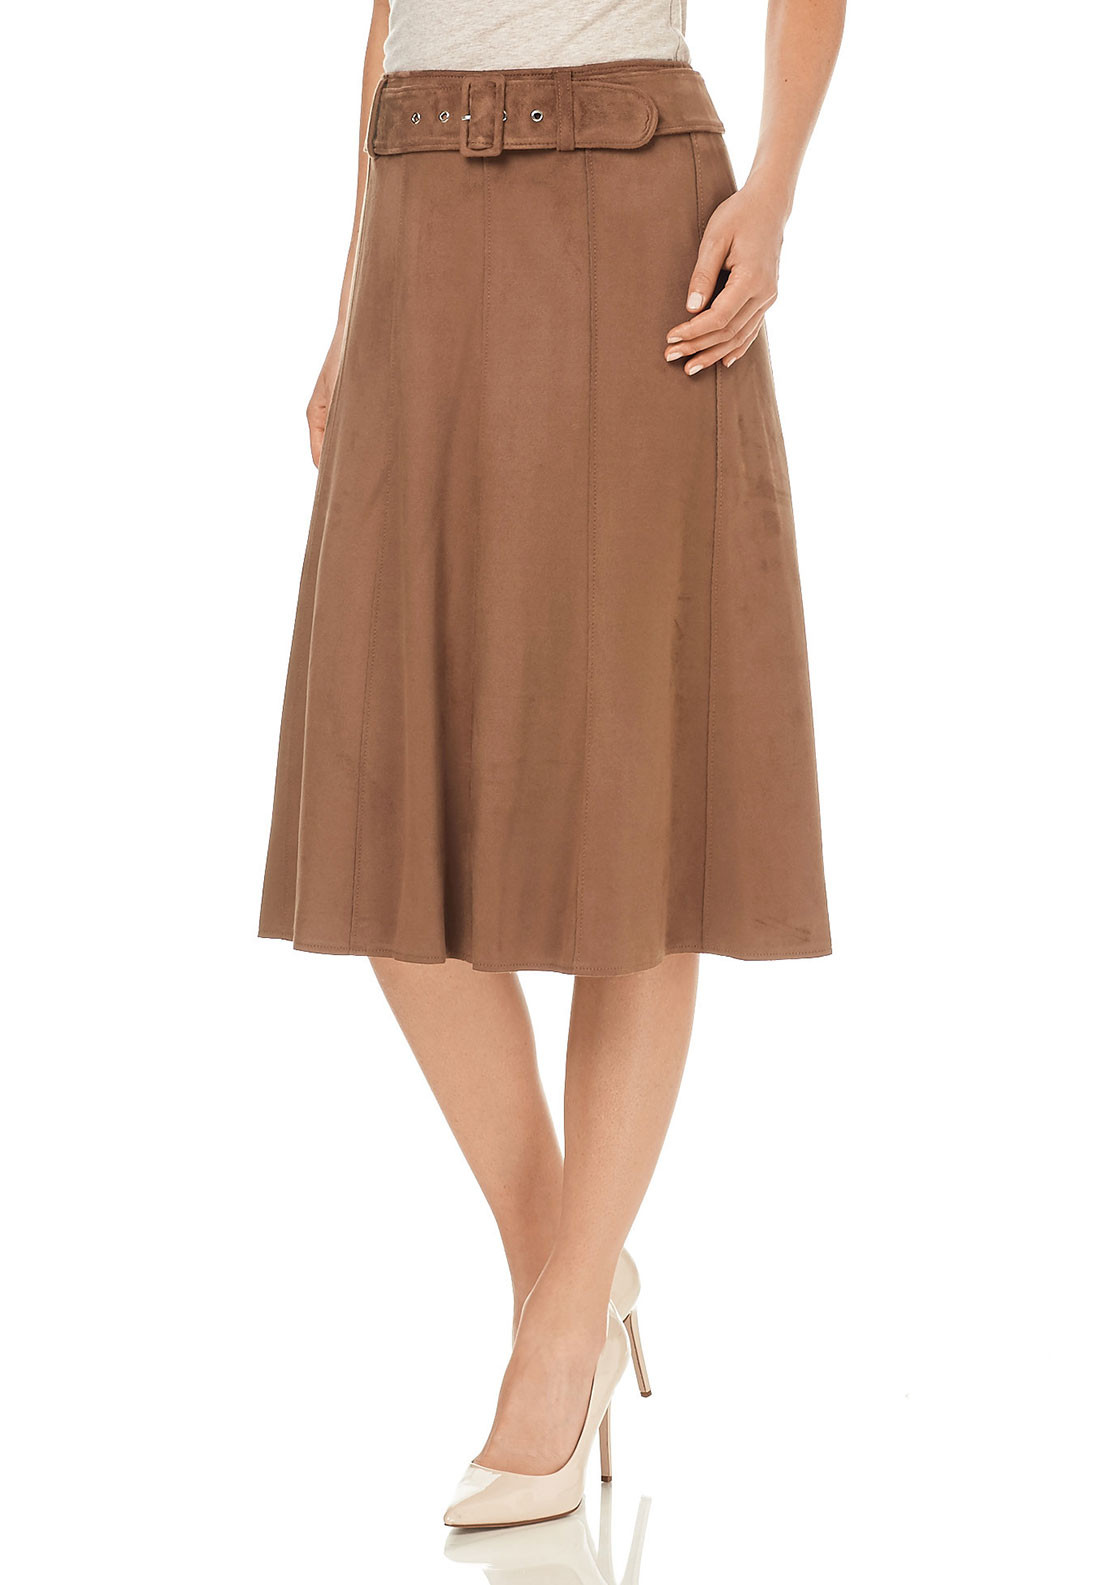 Gerry Weber Faux Suede Midi Skirt, Brown